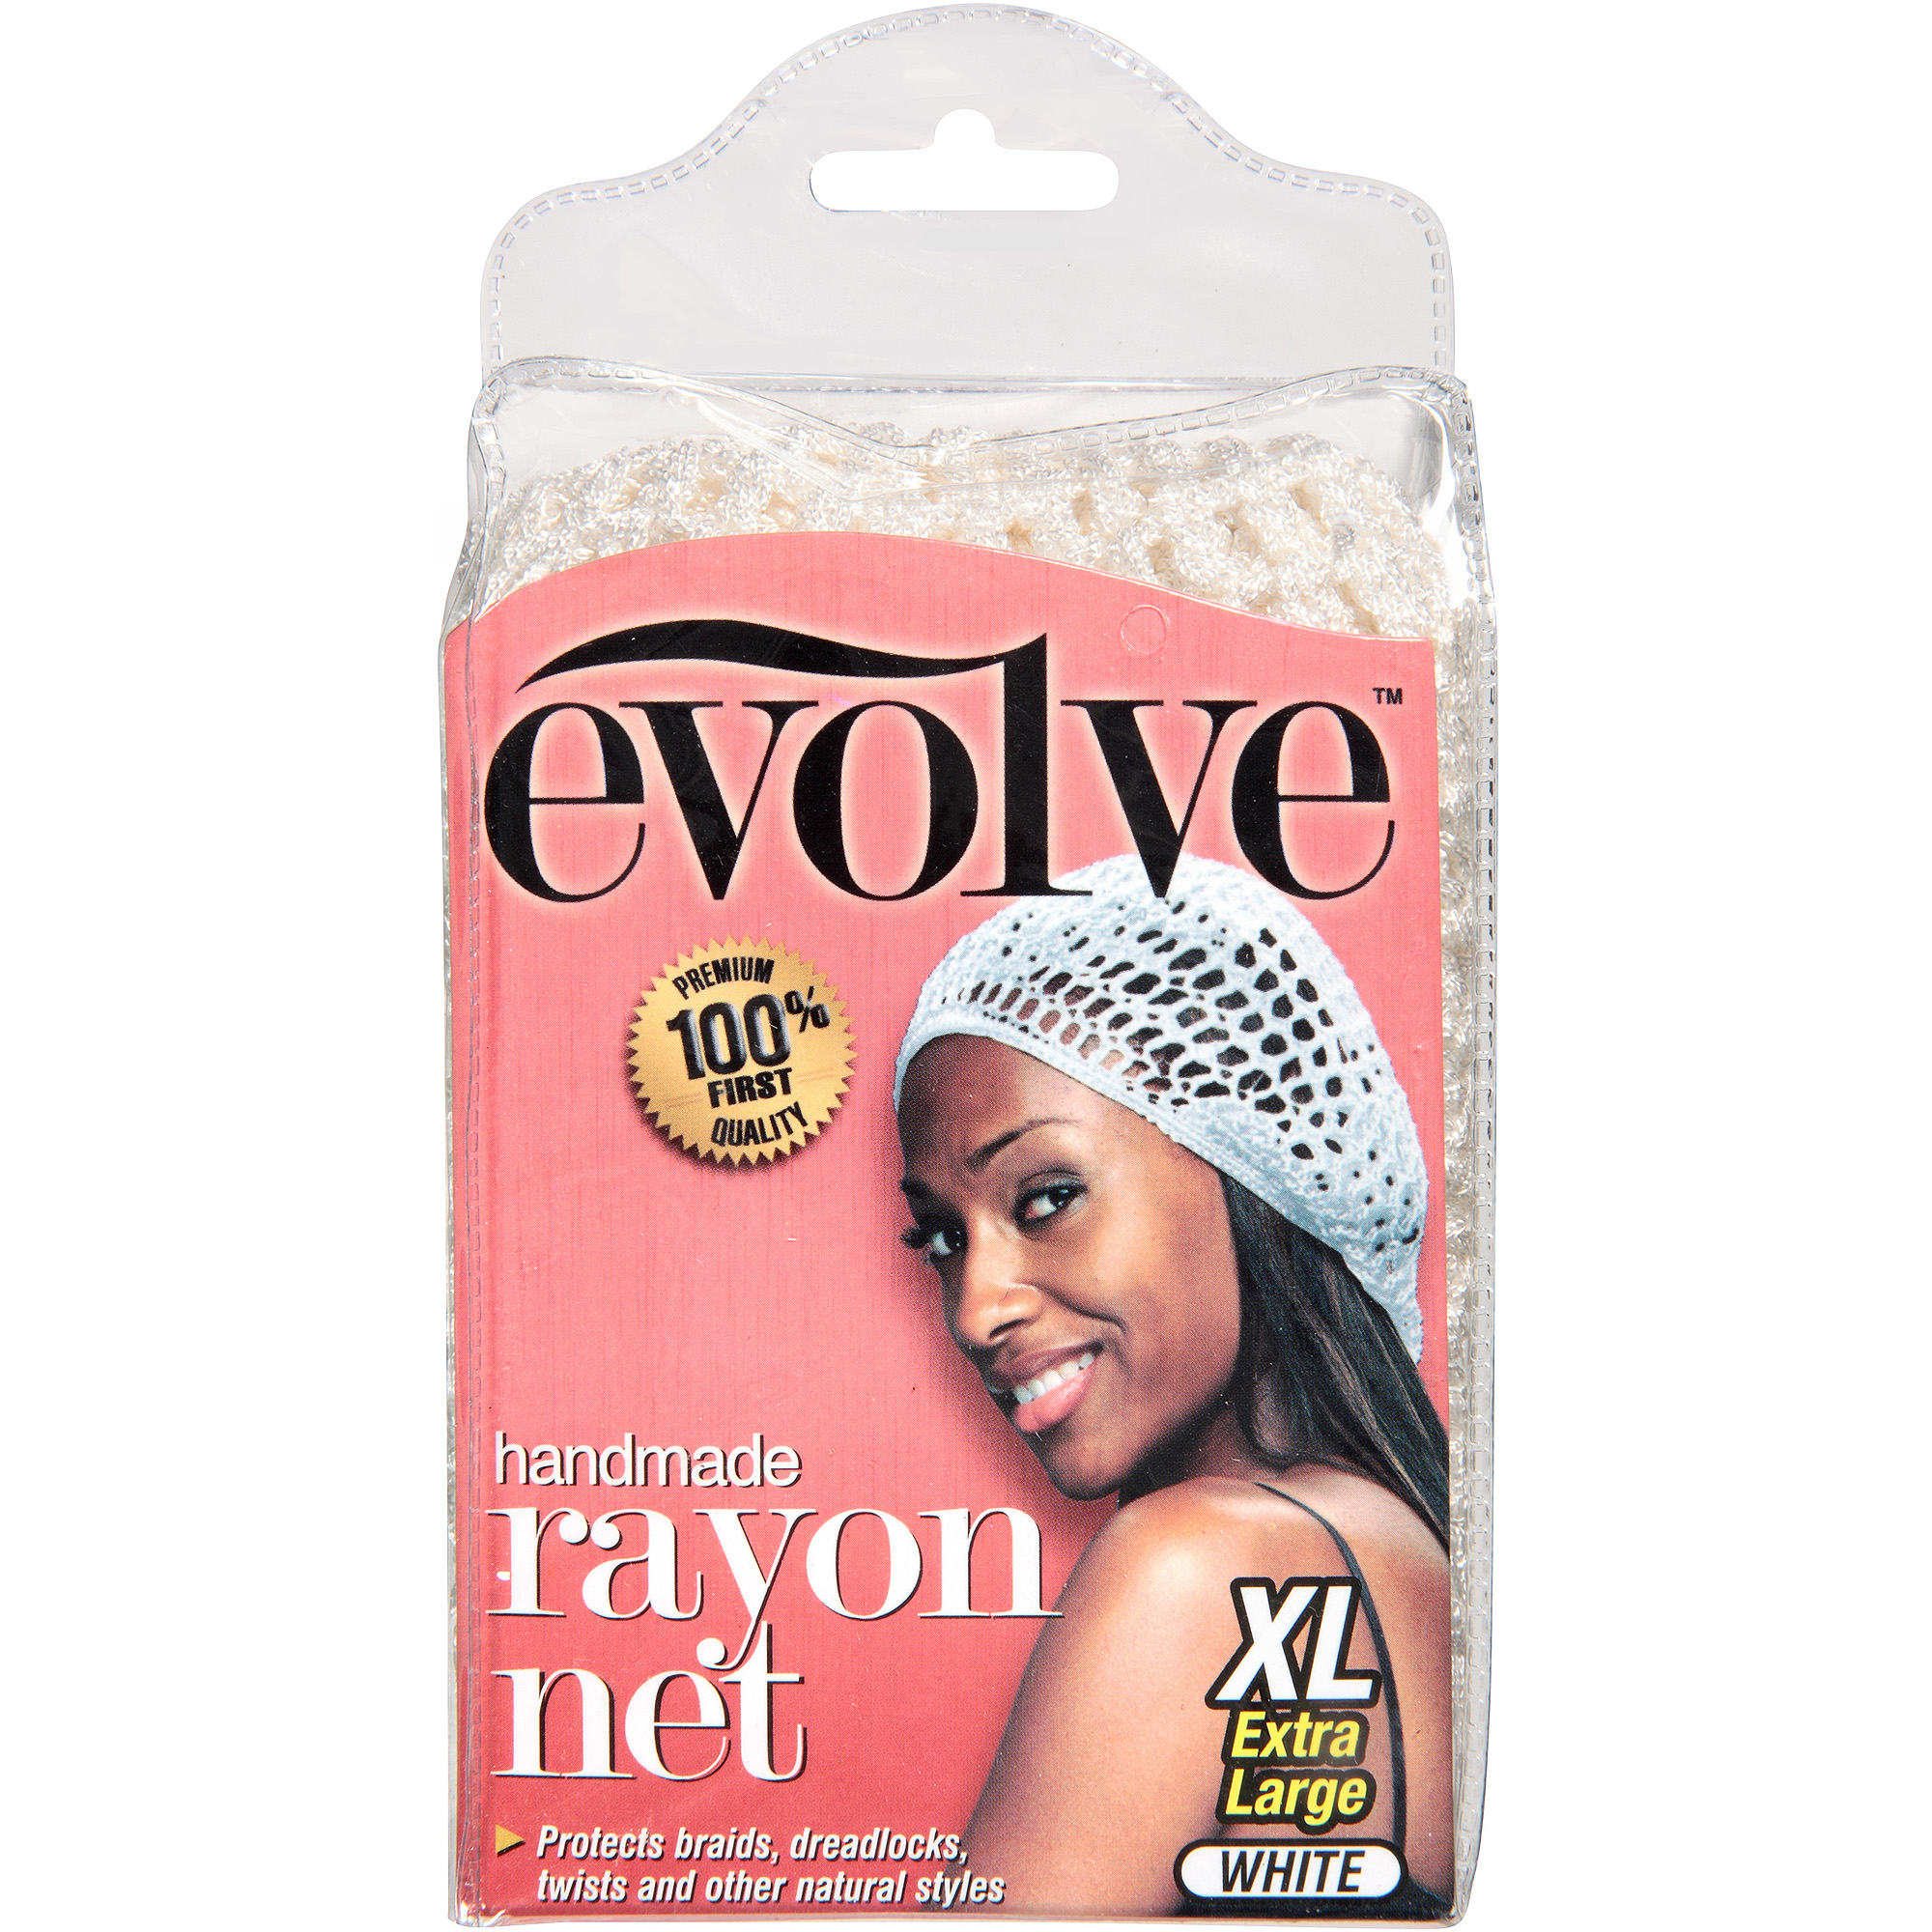 Evolve White XL Rayon Net